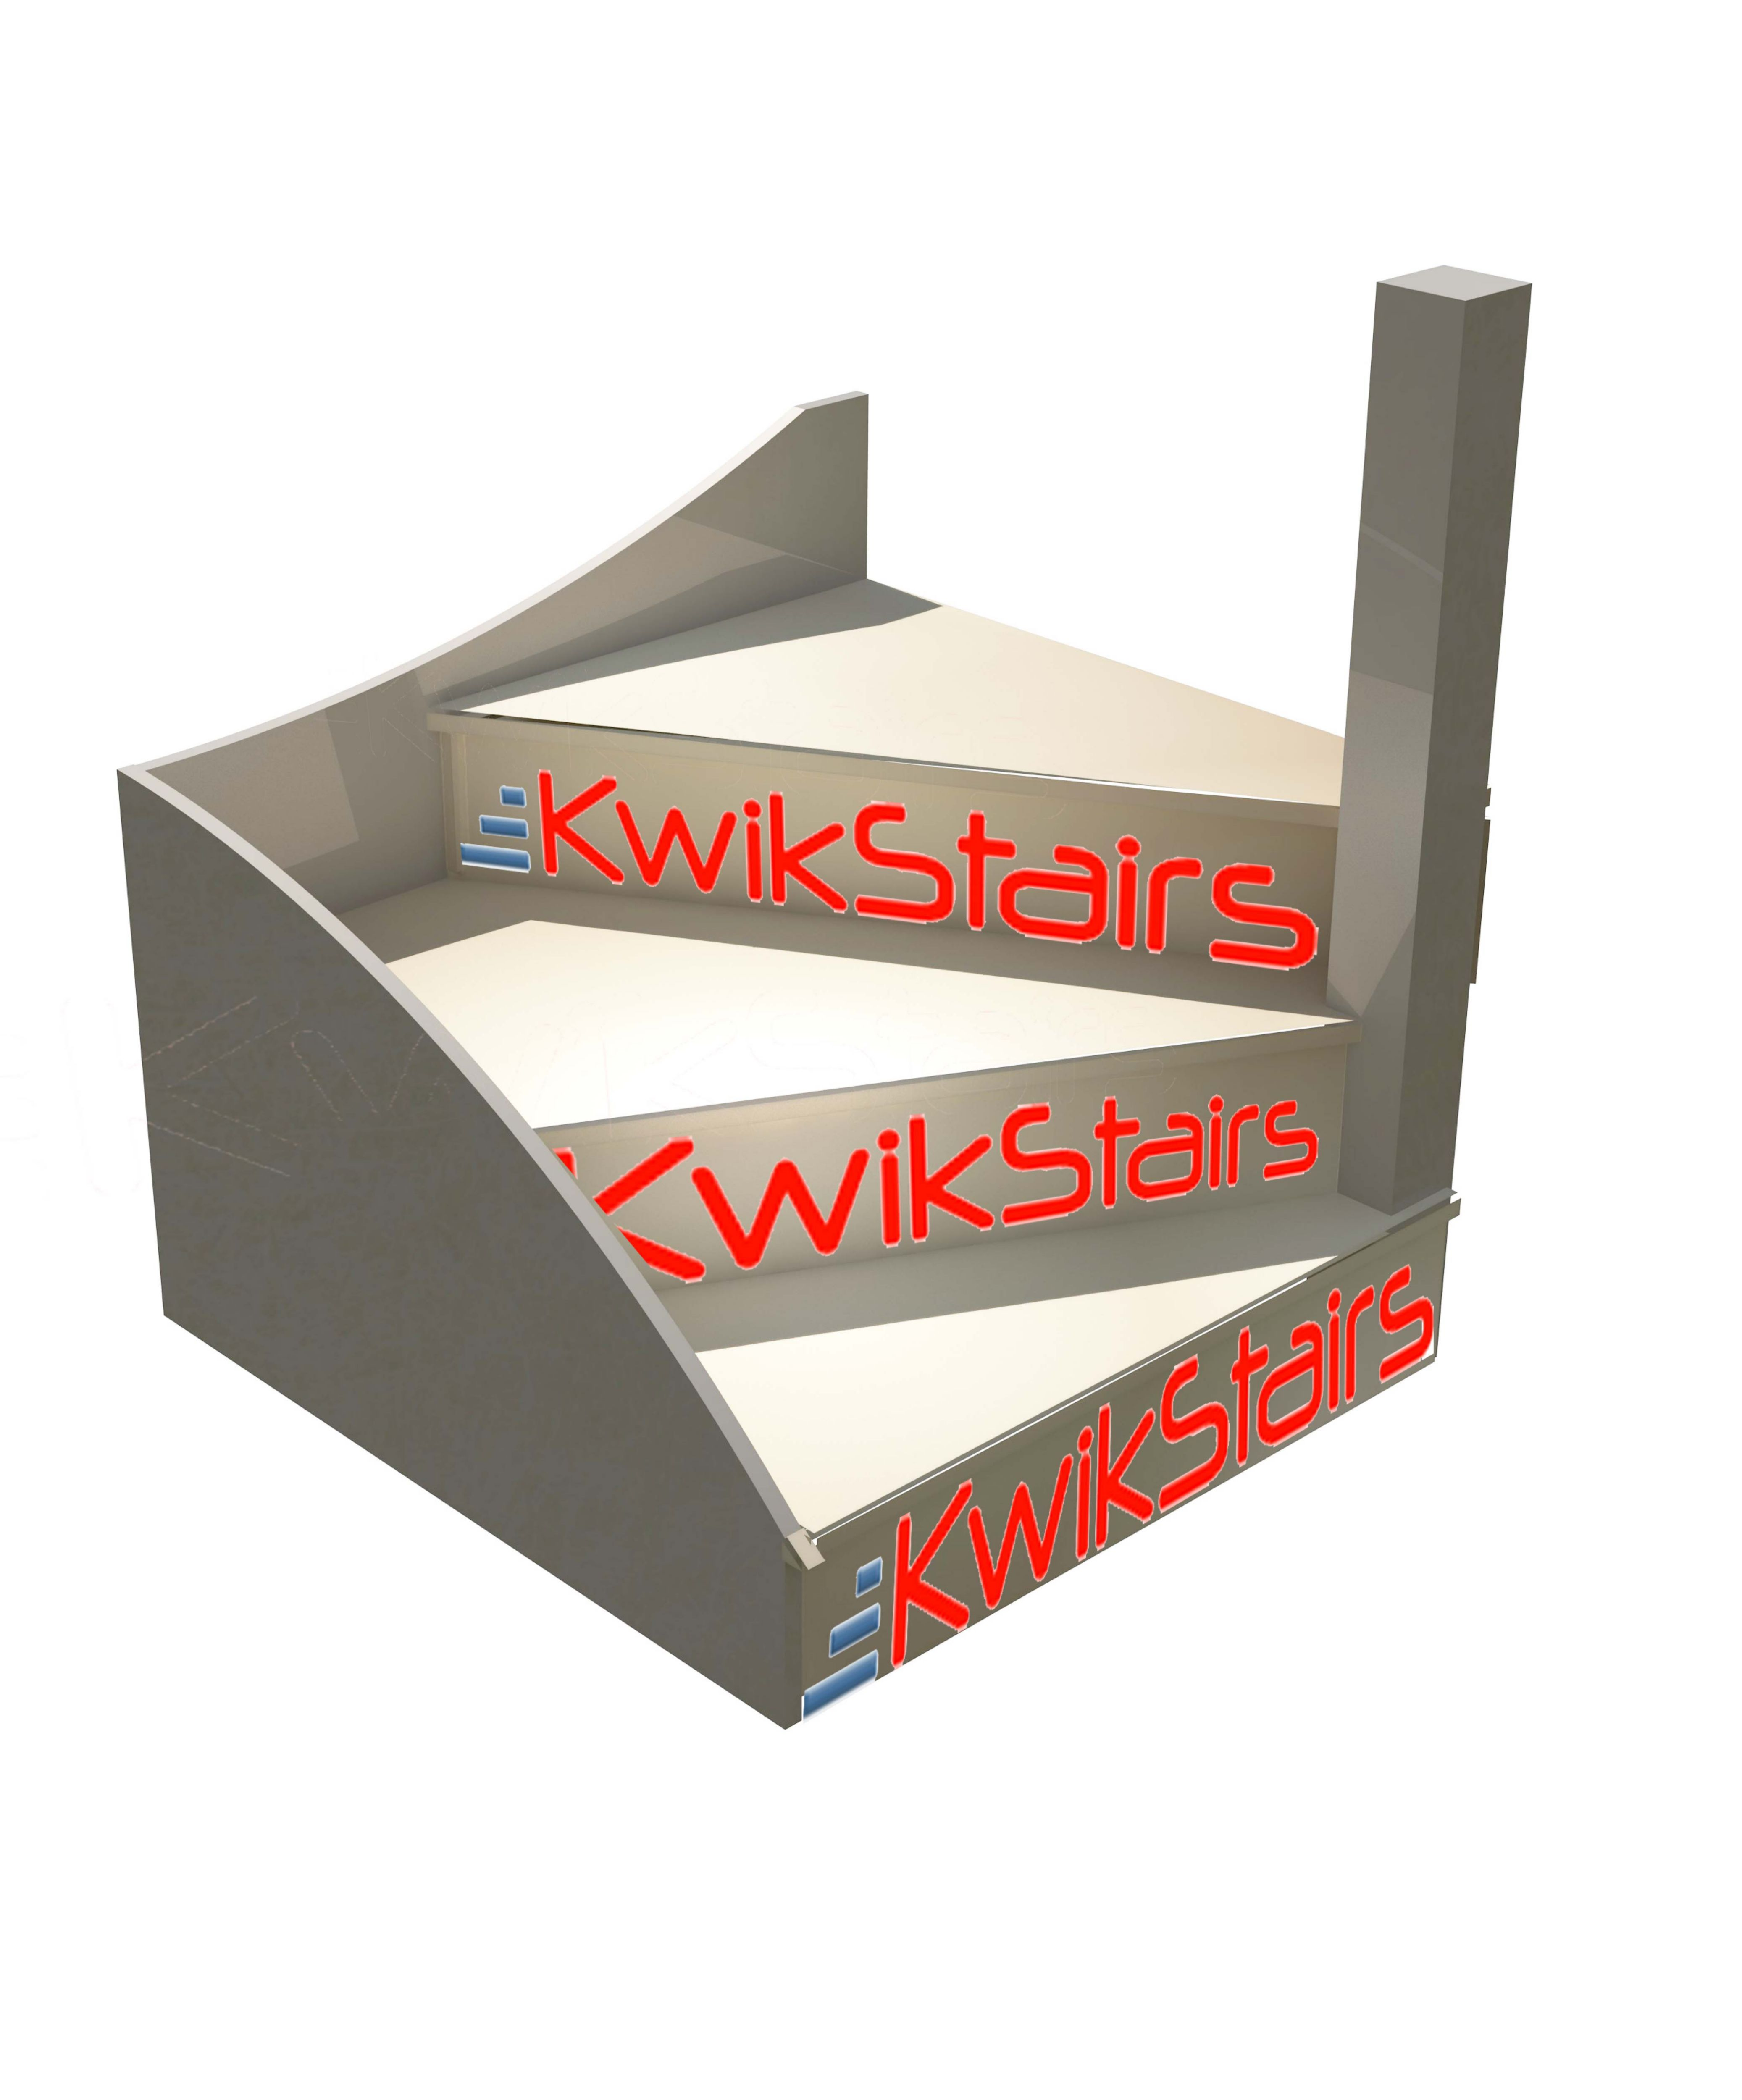 Stair calculator winders - Kwikstairs Right Hand Winder Staircase Pack W 900mm Departments Diy At B Q